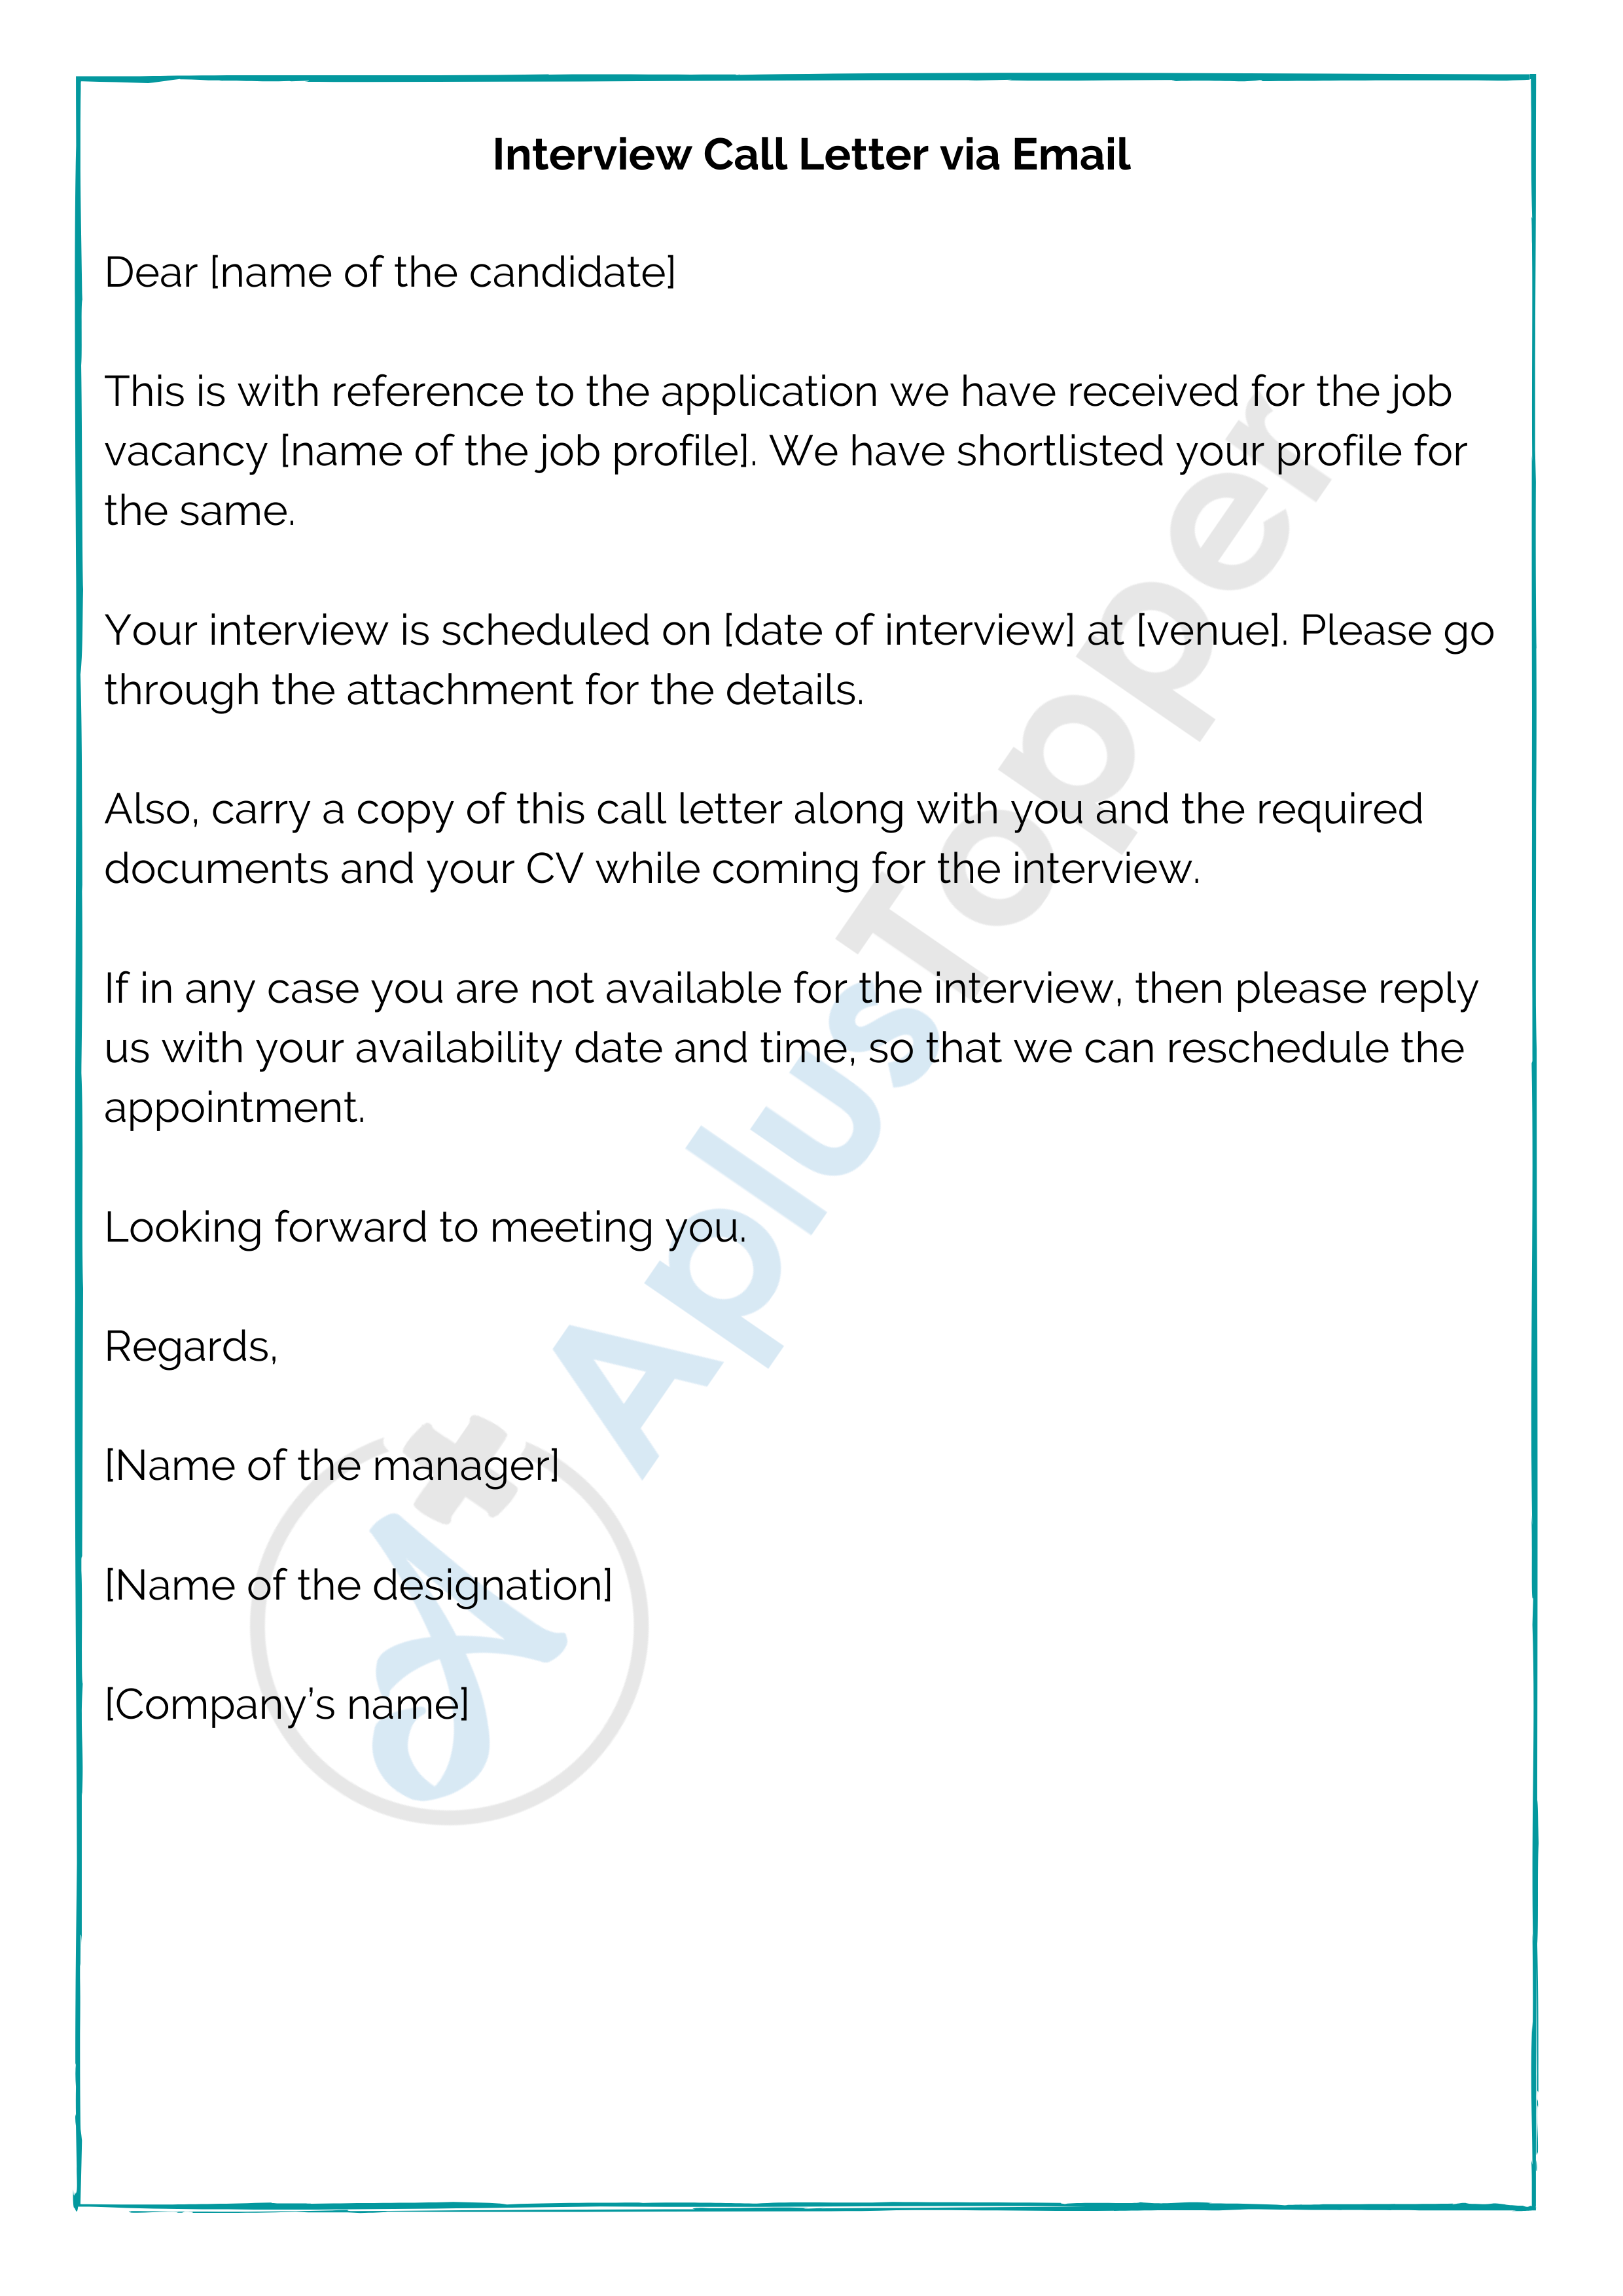 Interview Call Letter Via Email